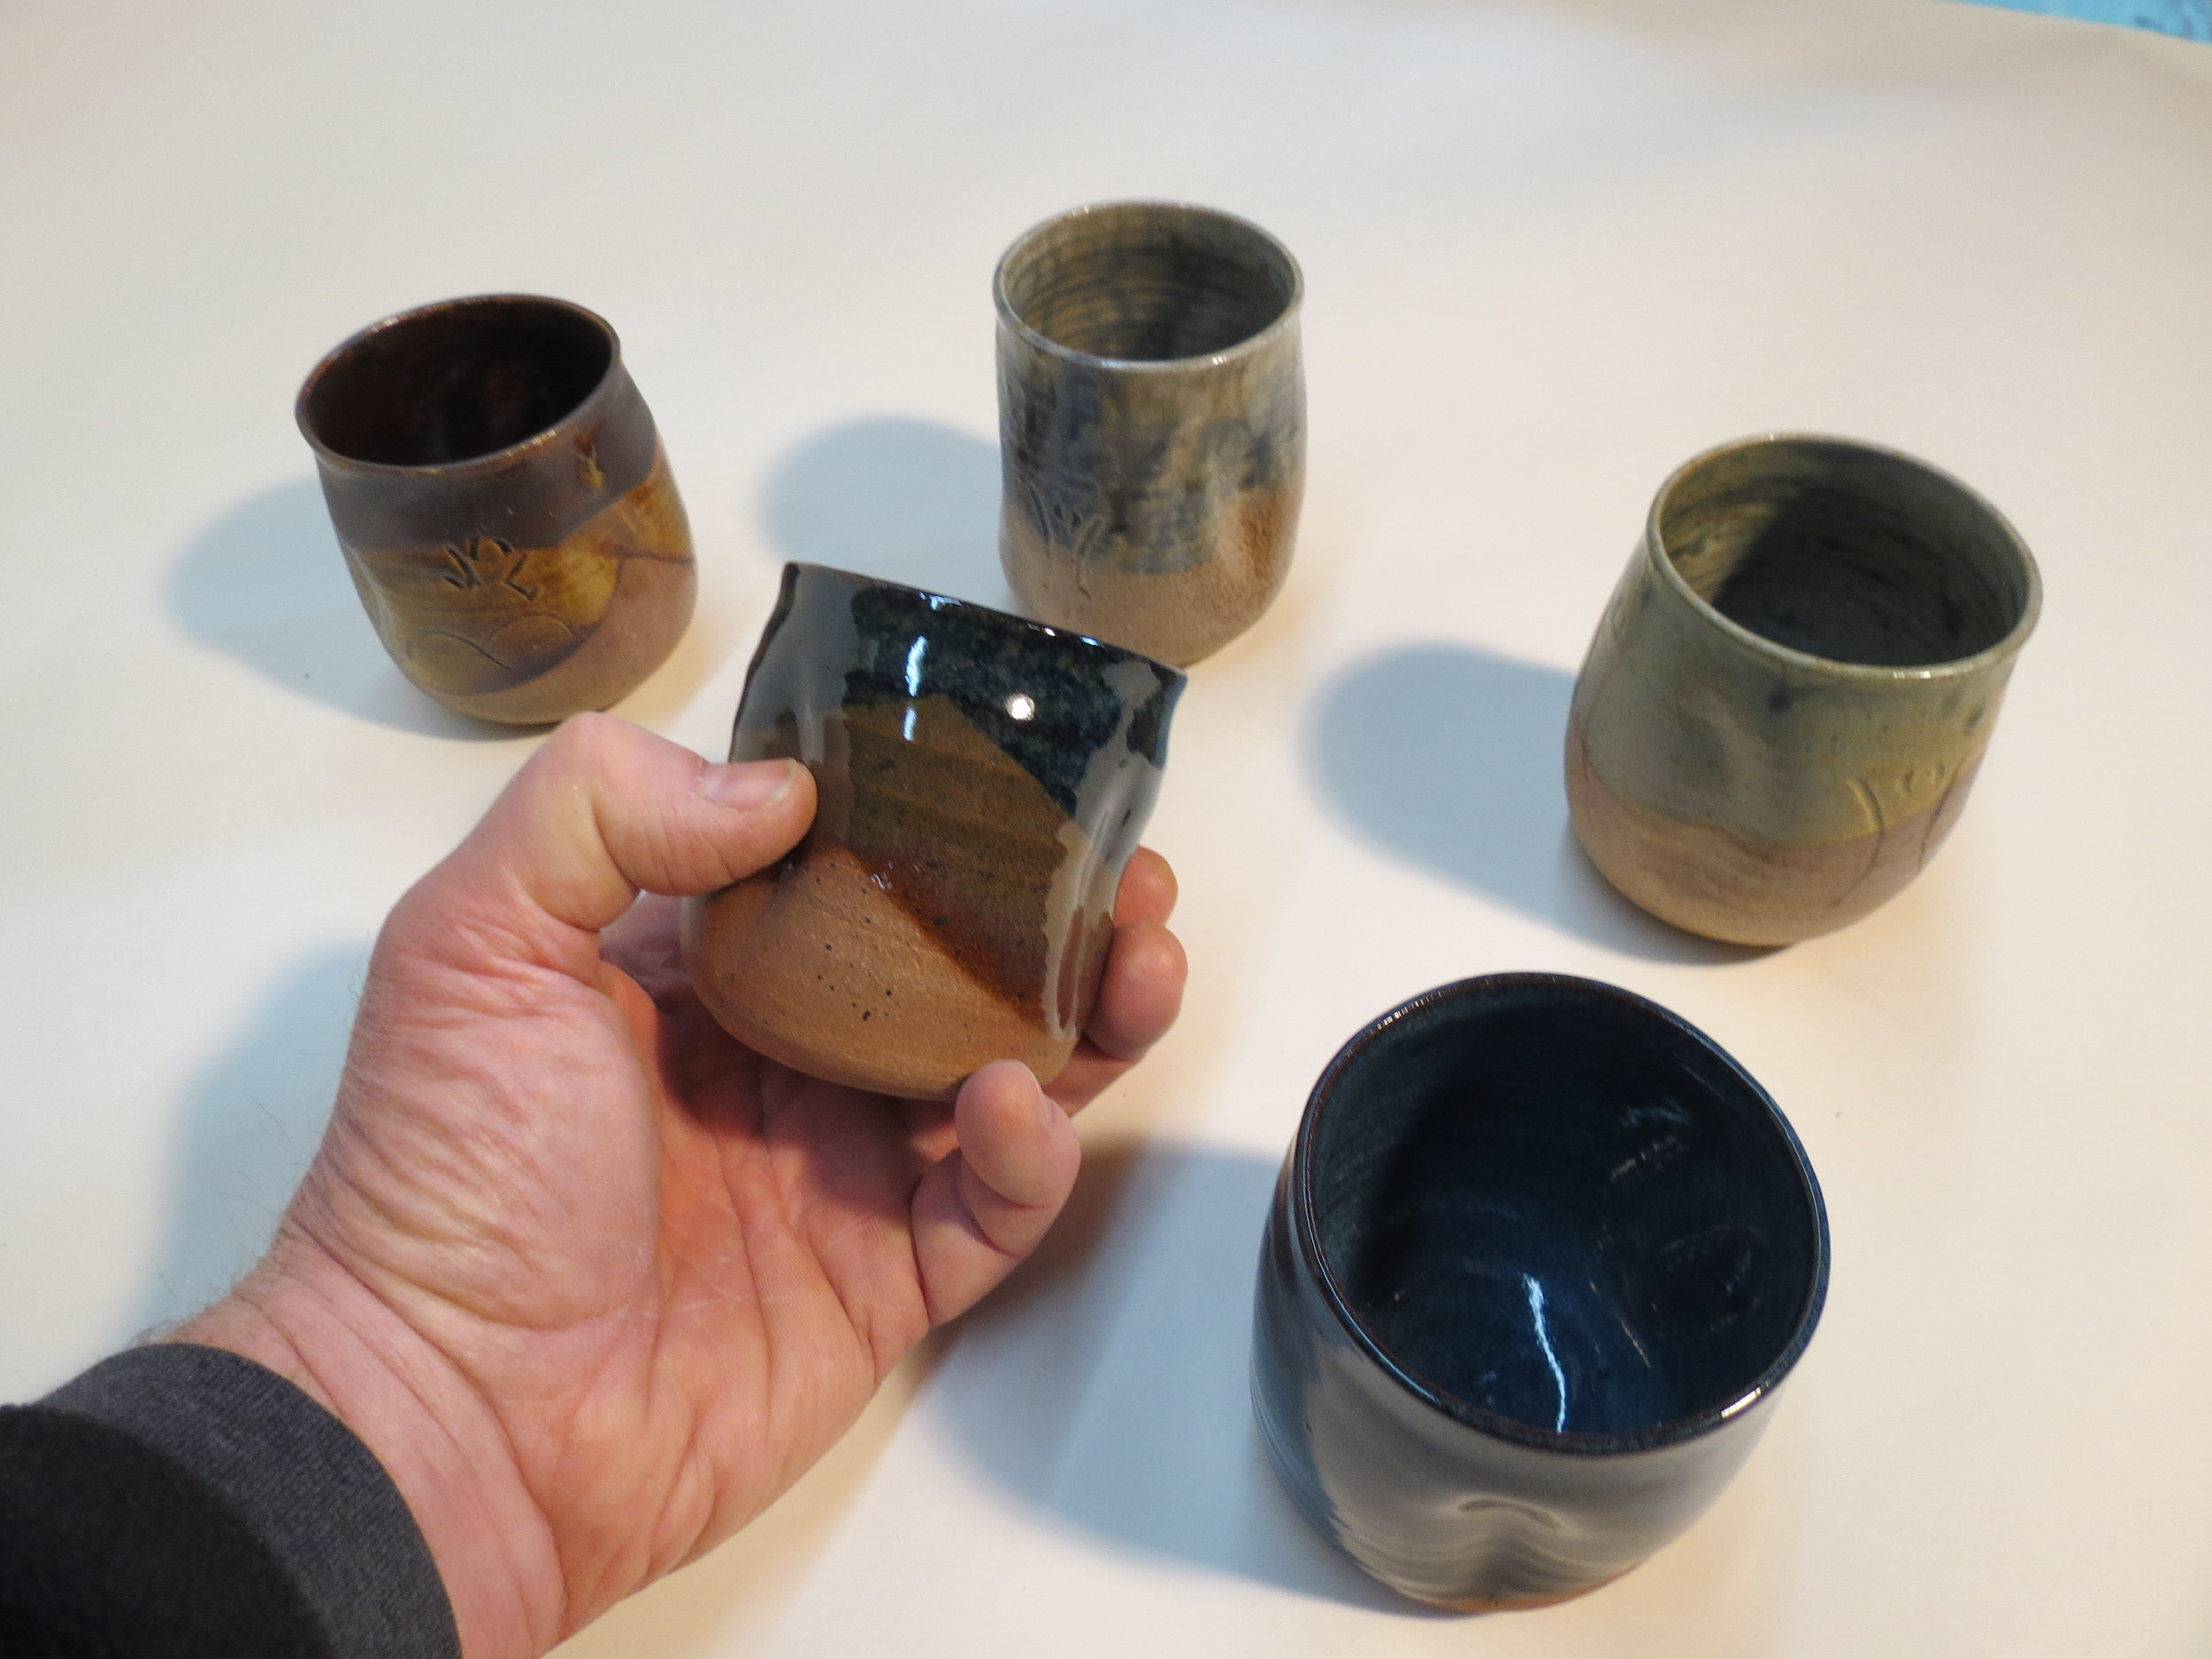 These small cups are great for the beverage of your choice. I use them for anything from water to tea to bourbon.